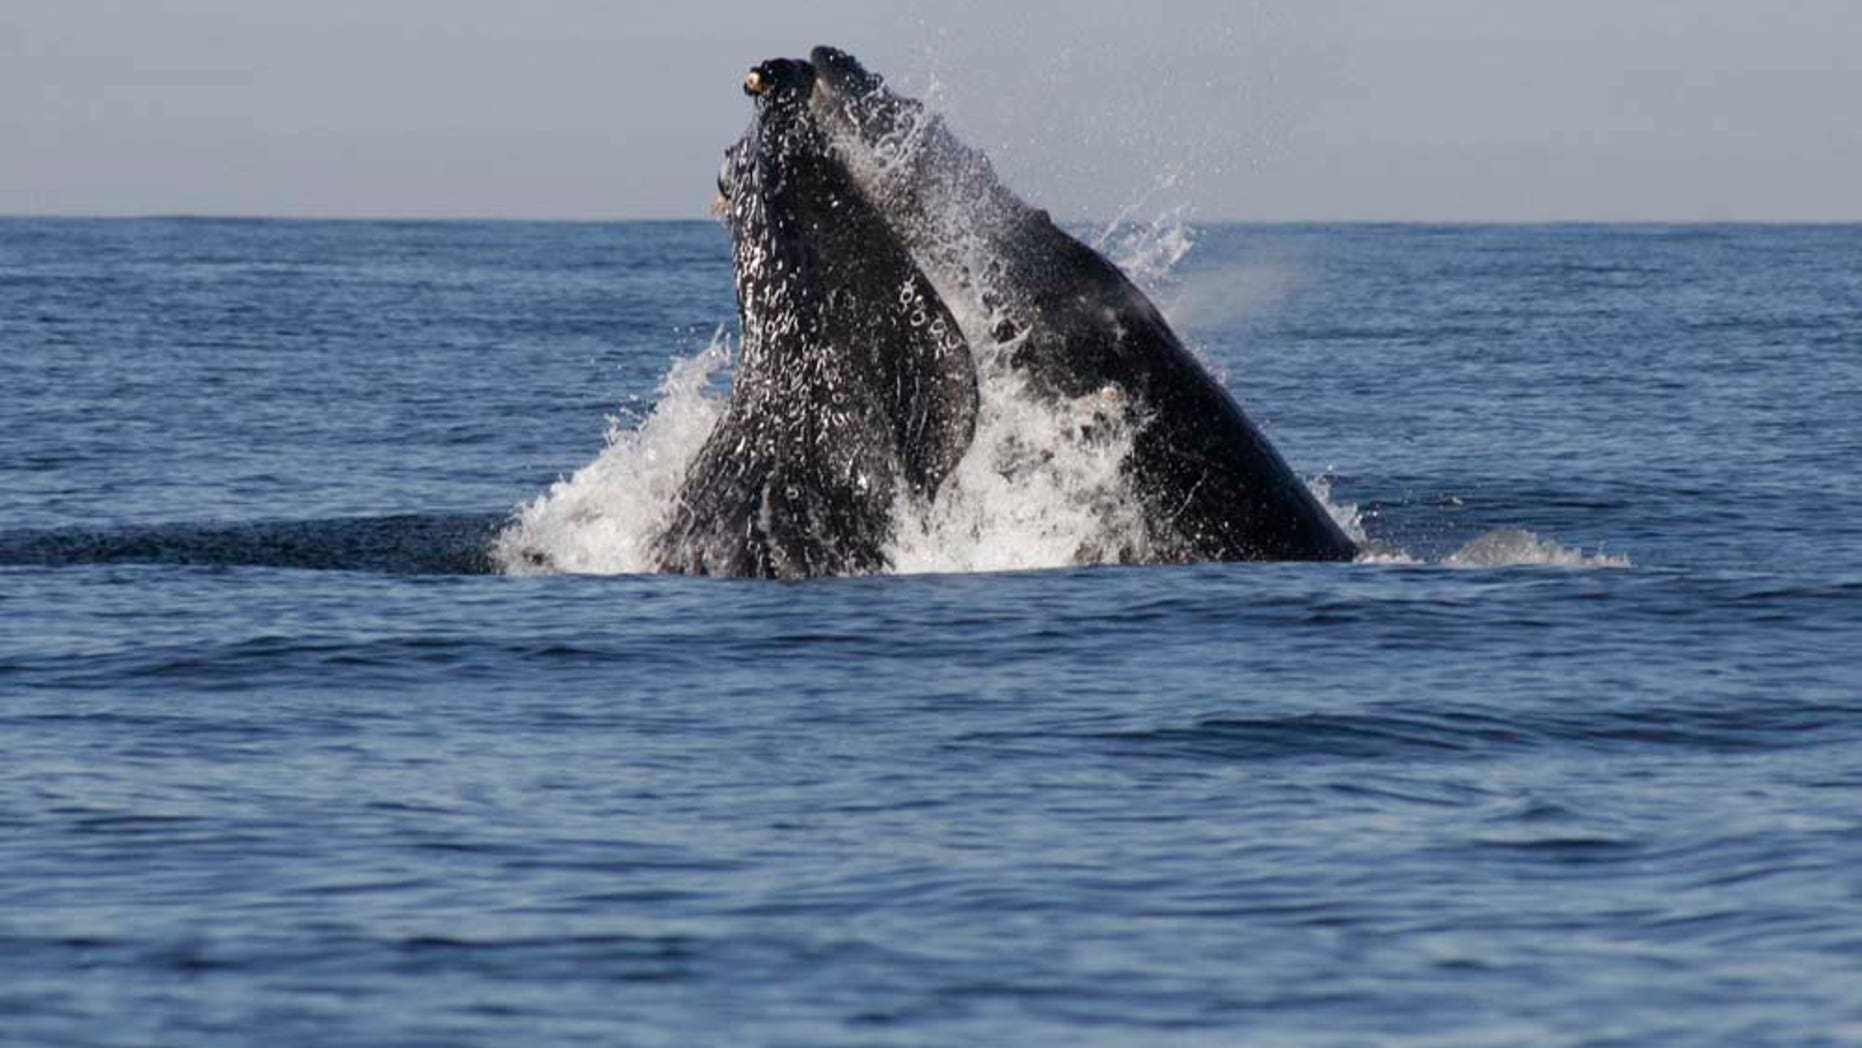 A humpback whale breaches in the waters of the Pacific Ocean near the Mexican resort city of Mazatlan, Mexico Wednesday Jan. 11, 2011. Every year the whales pass through these waters from the Eastern North Pacific to central Mexico, Baja California and even Central America for calving.  (AP Photo/Christiann Davis)